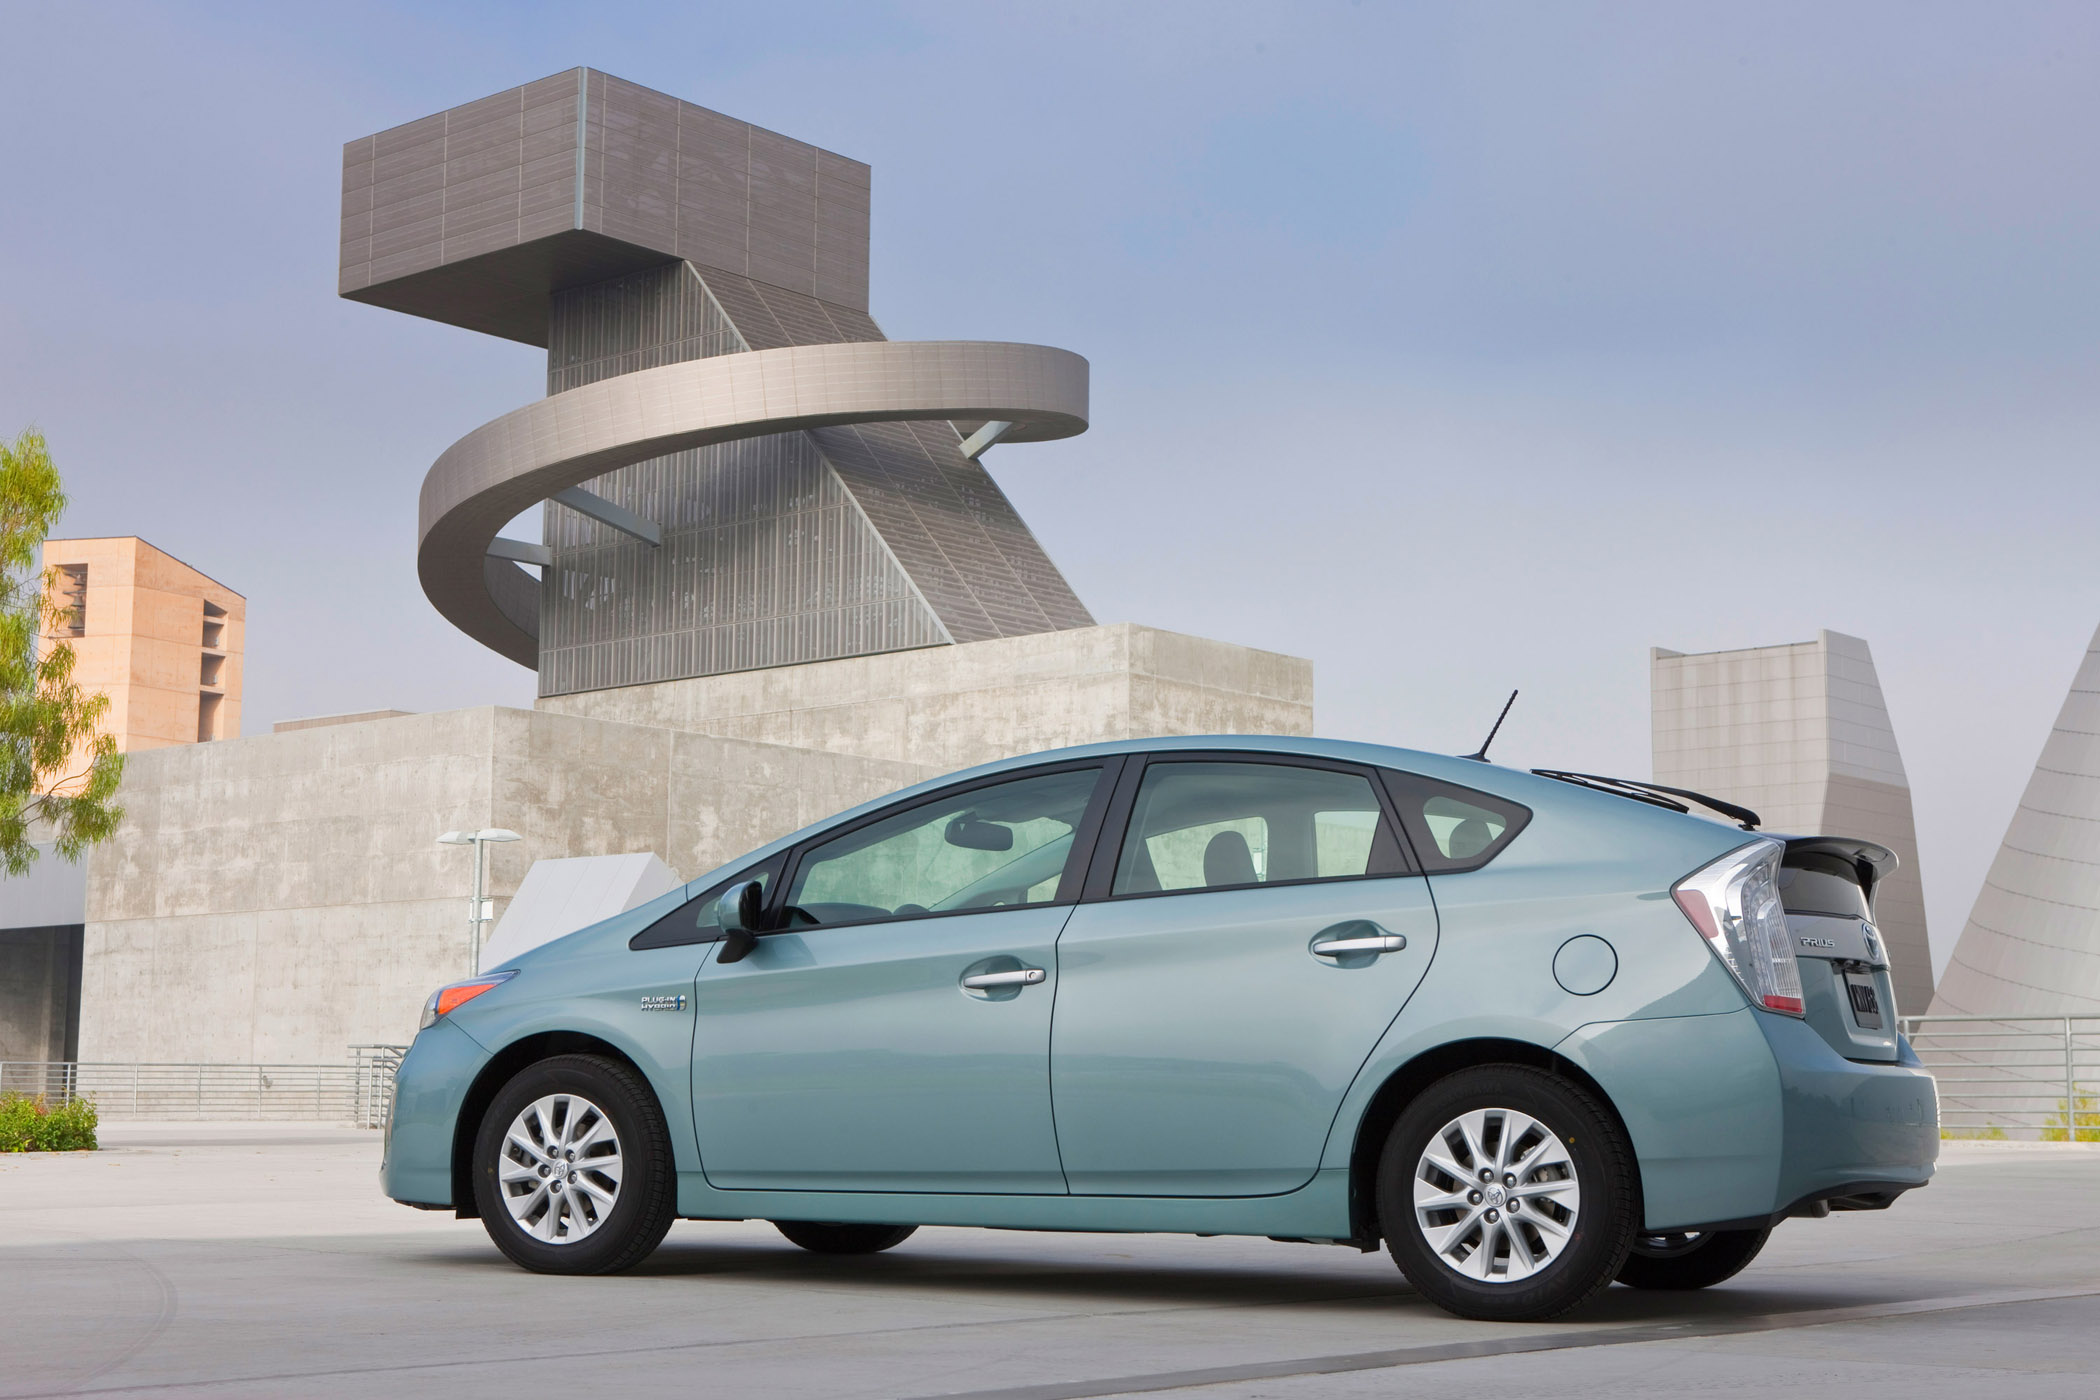 Manufacturer photo: Among the noteworthy 2013 new car choices are the Chevrolet Spark, Ford Fusion, Cadillac ATS, Subaru BRZ and Toyota Prius Plug-in.